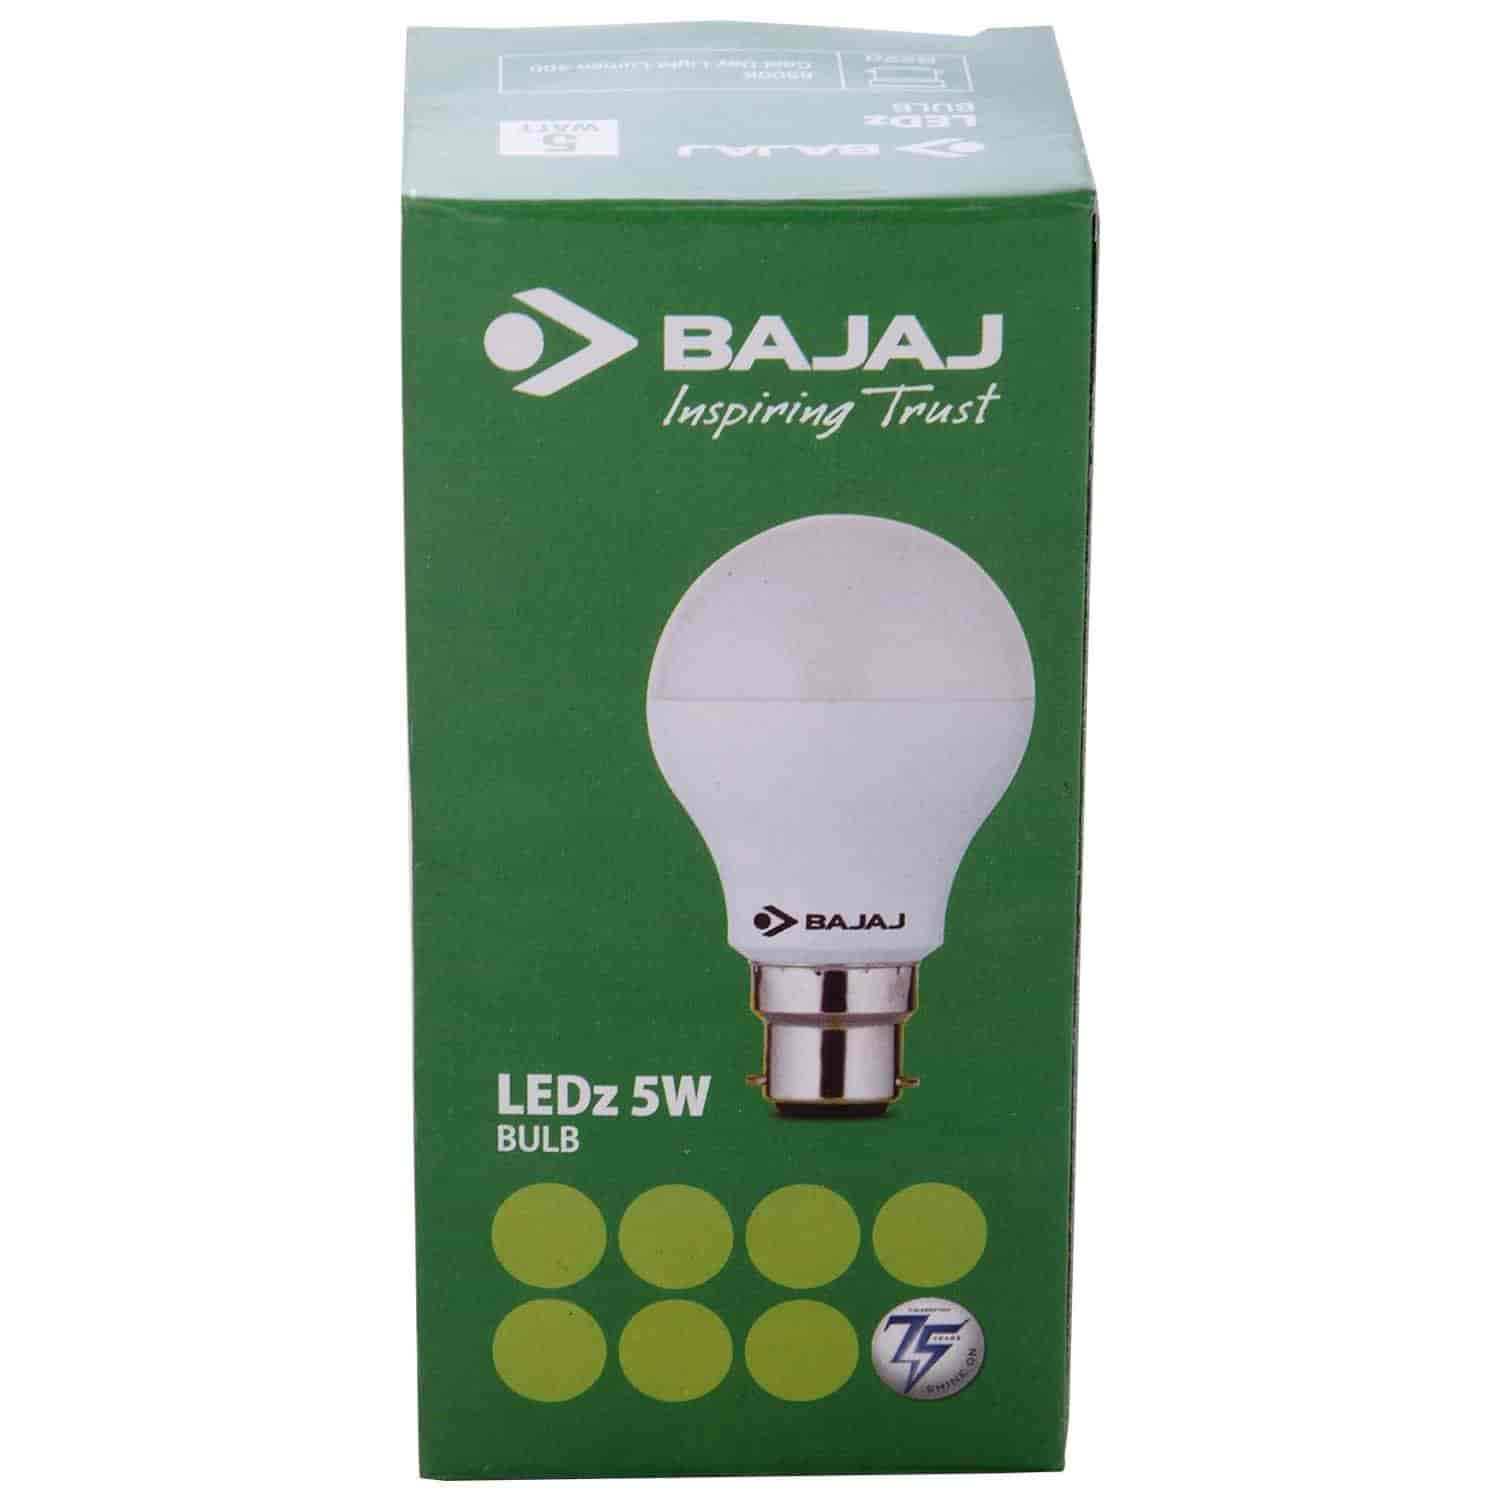 5 Watt Led Buy Bajaj Led Bulb 5 Watt Features Price Reviews Online In